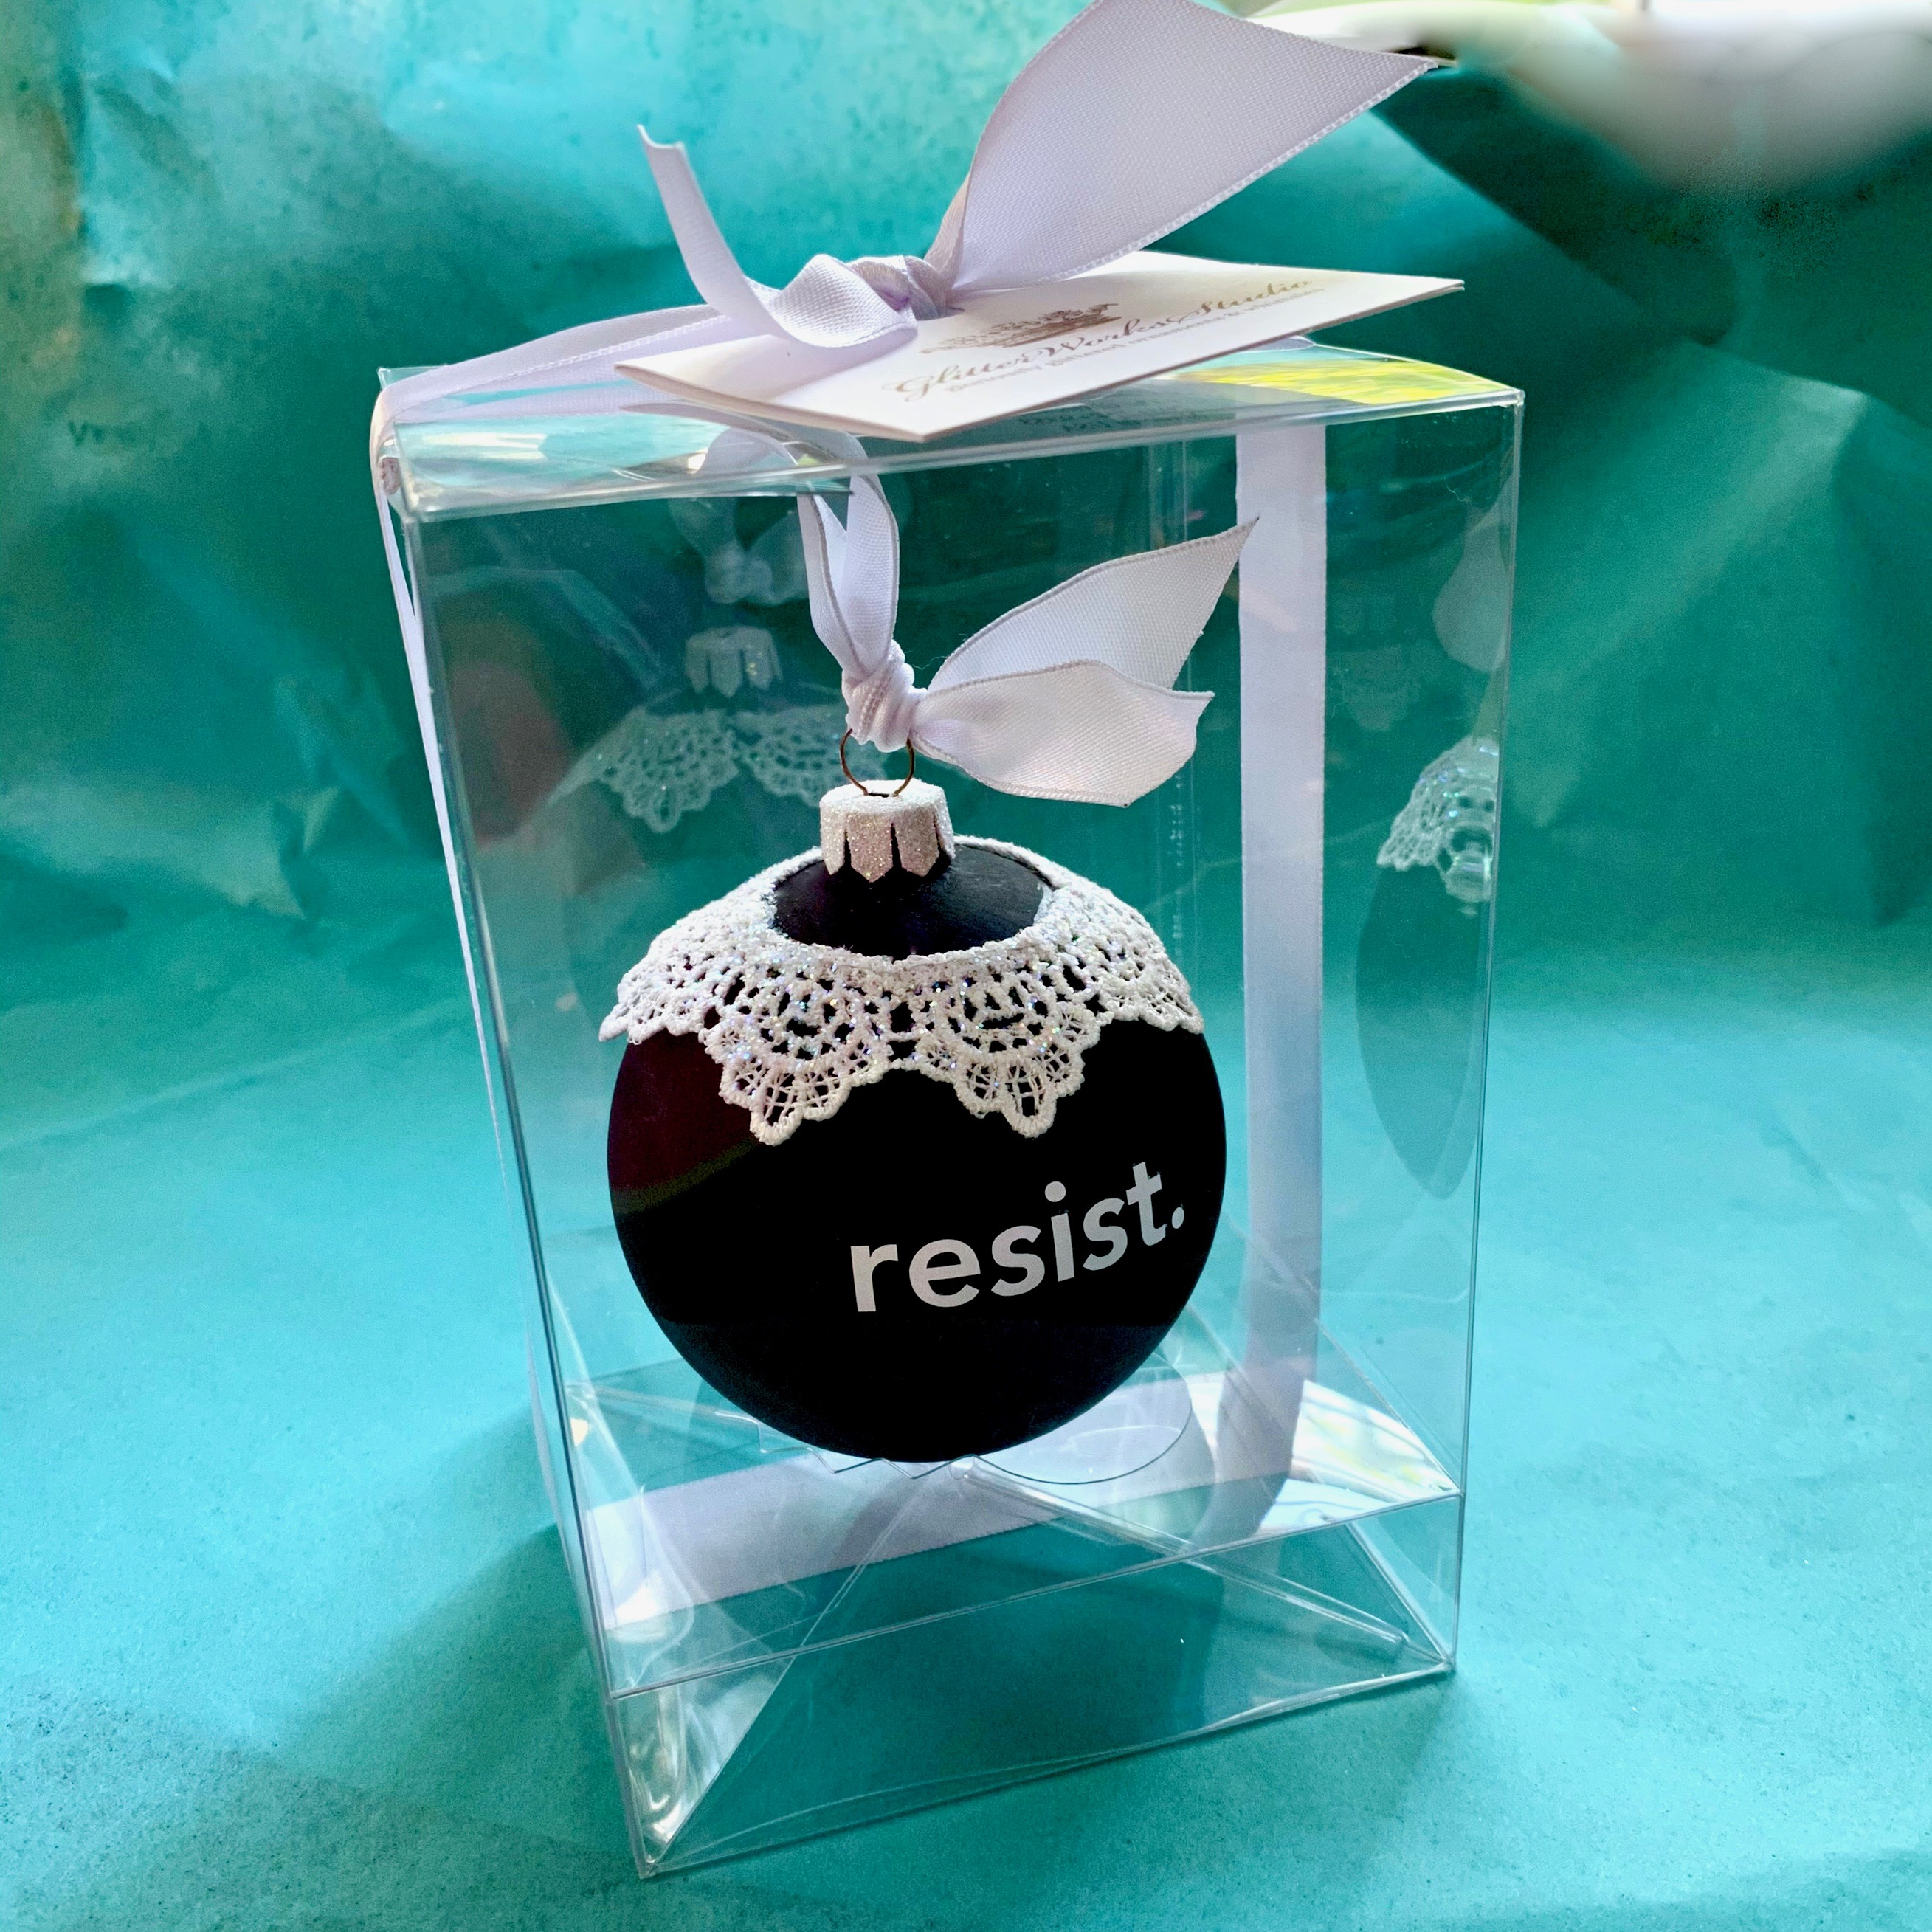 RBG Resist (large) lace collar in packaging $35